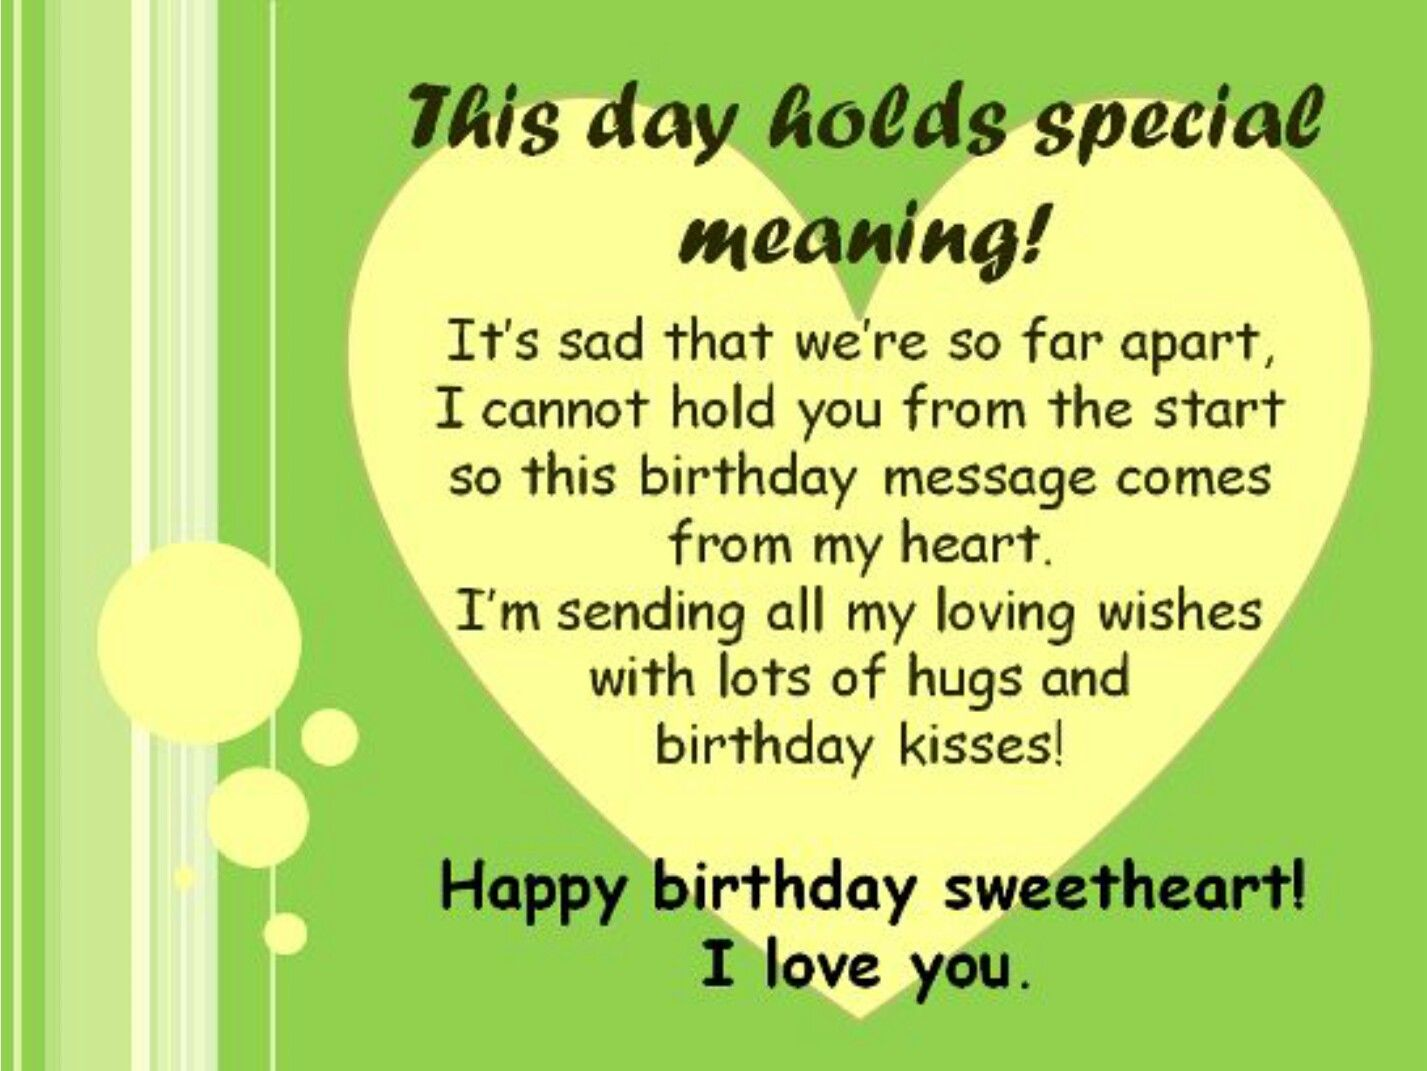 Pin by RoxanneFayeKisling on Cards Birthday wish for